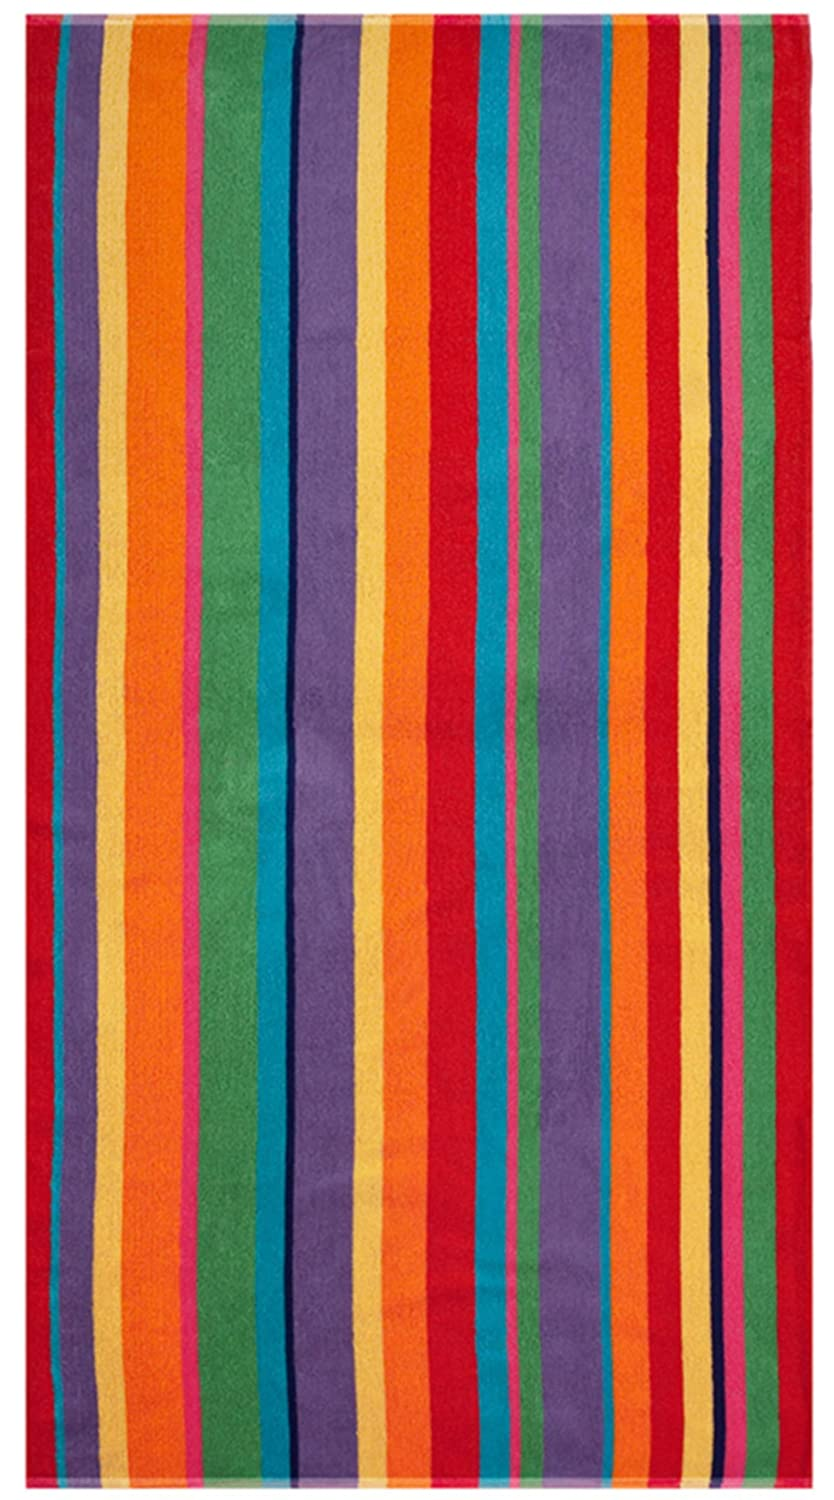 Cotton Craft - Luxury Beach Towel for Two 58x68 - Beach Blanket - Summer of Siam Multi Stripe.